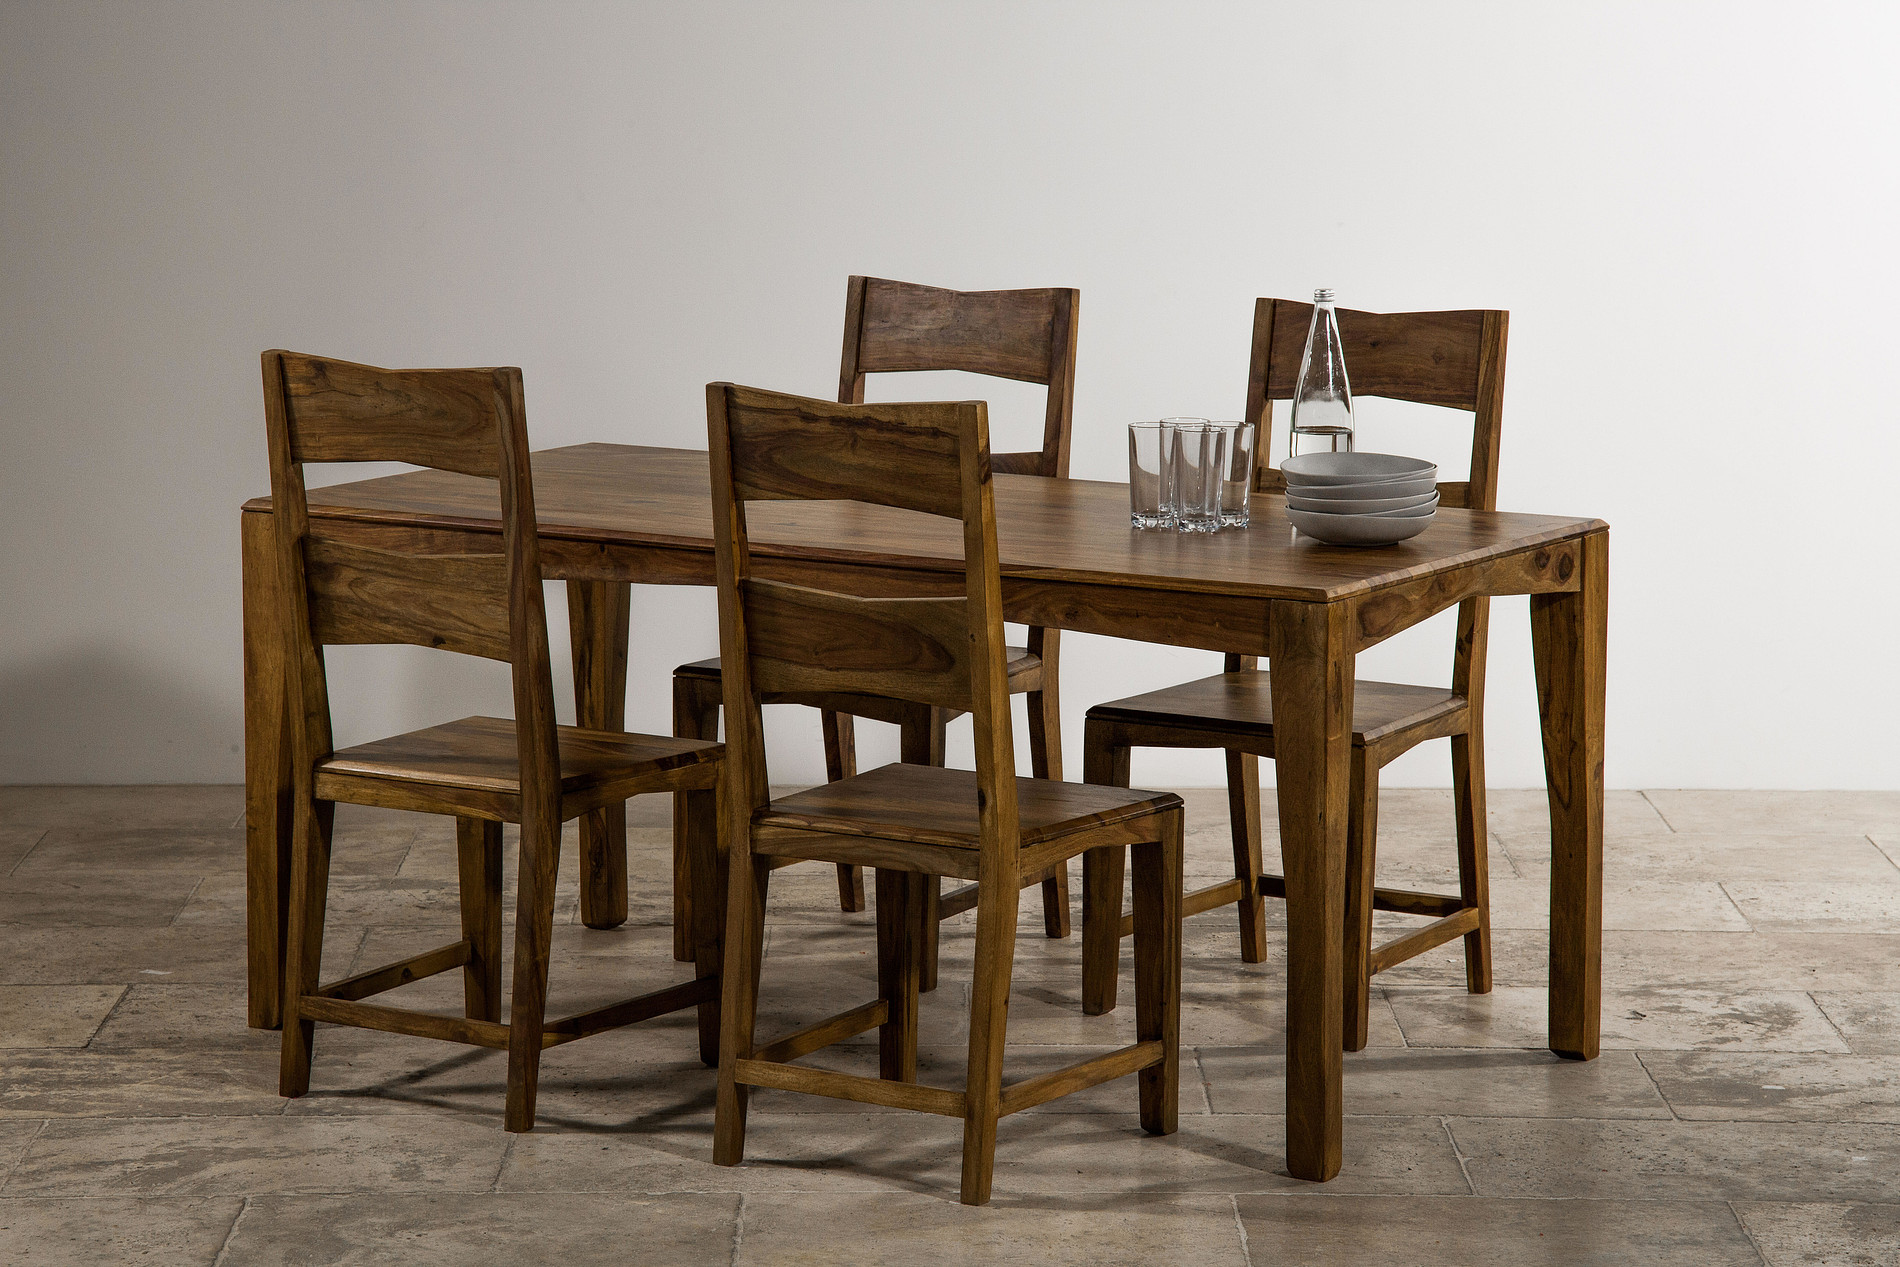 2 x 4 dining chairs ergonomic chair kuala lumpur tali solid rosewood 5ft 6 2ft 9 table 43